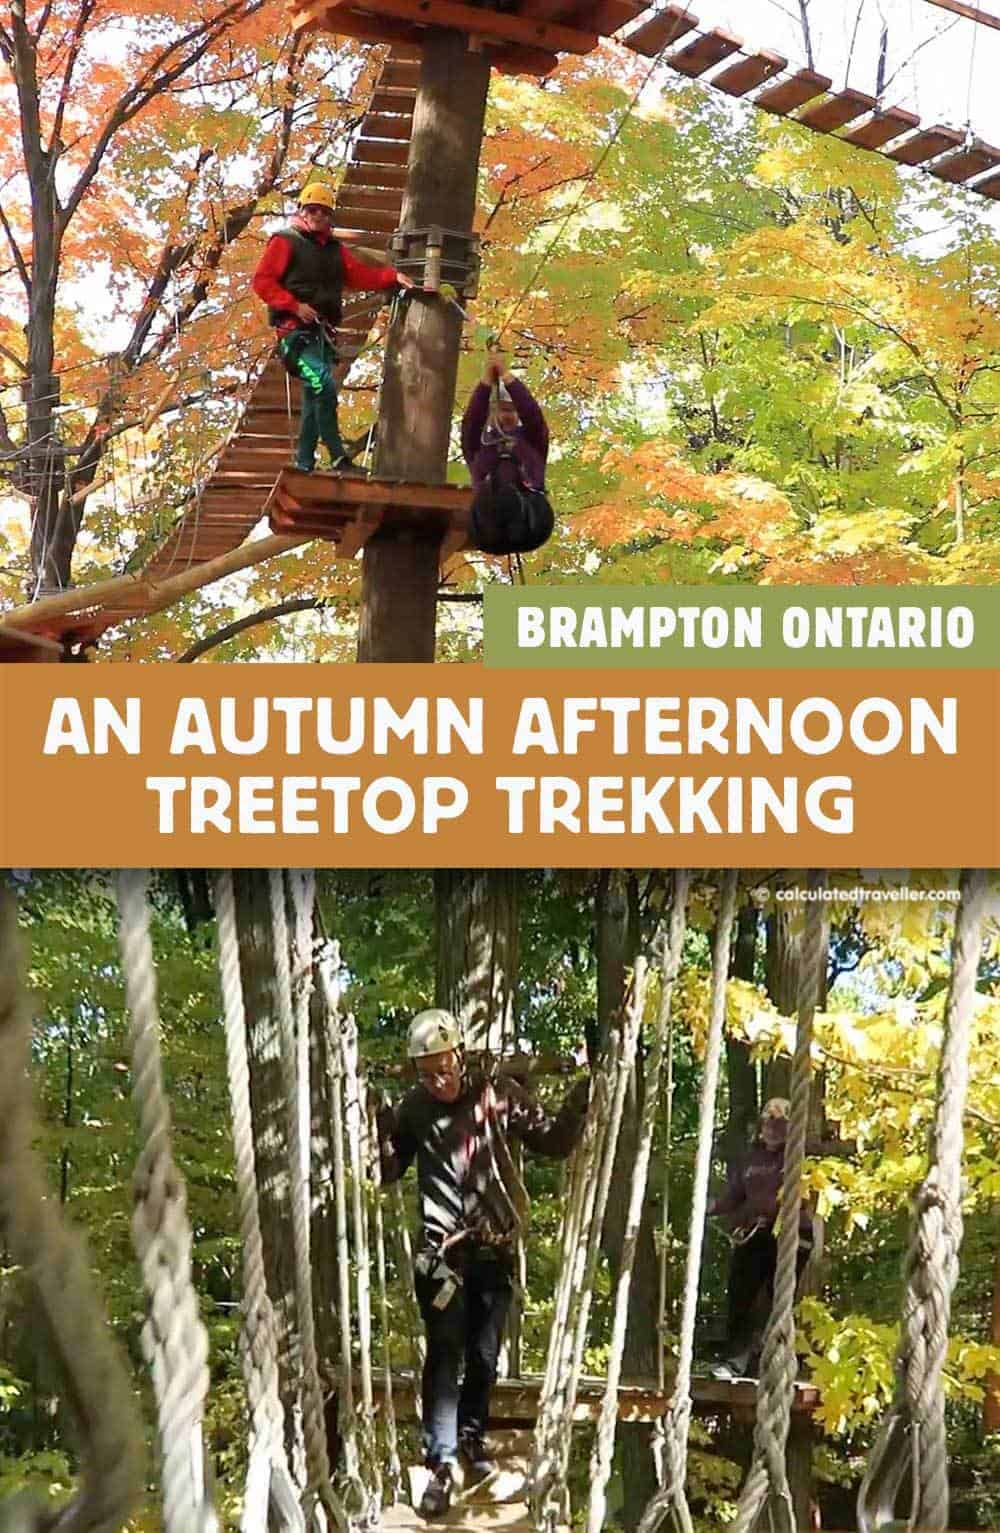 An Autumn Afternoon Treetop Trekking in Brampton Ontario a review by Calculated Traveller Magazine